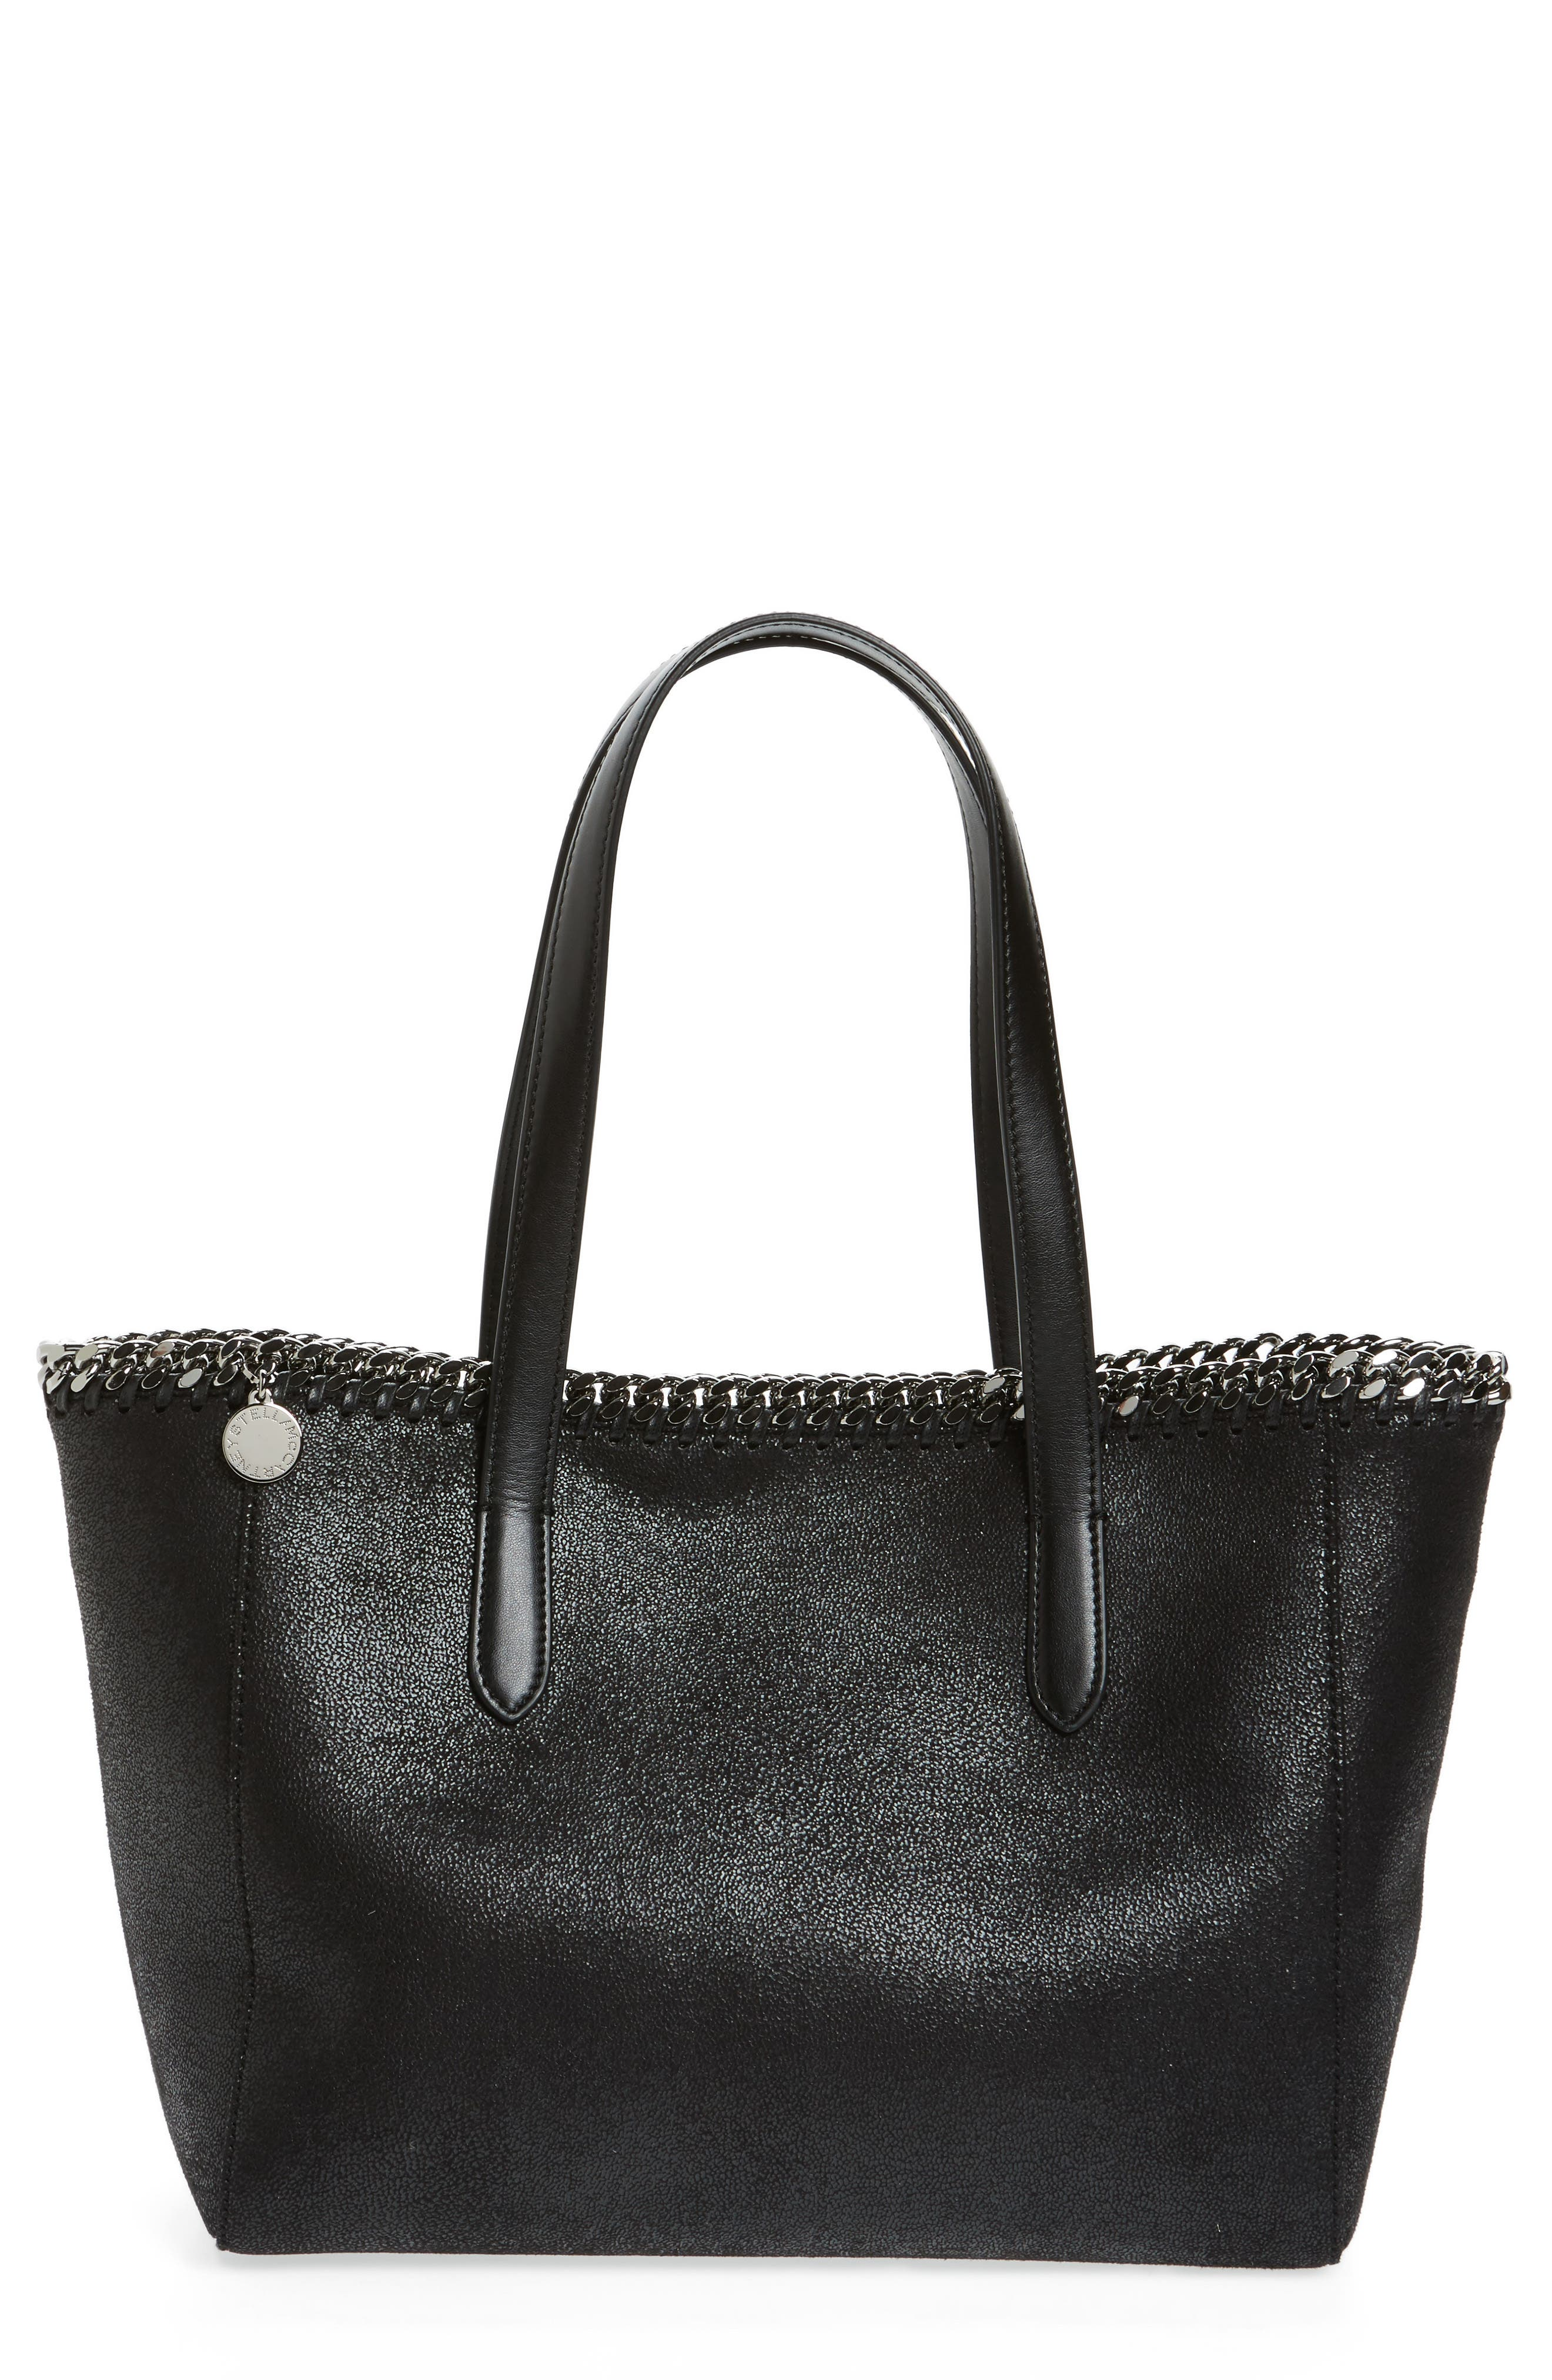 Alternate Image 1 Selected - Stella McCartney Small Falabella Shaggy Deer Faux Leather Tote